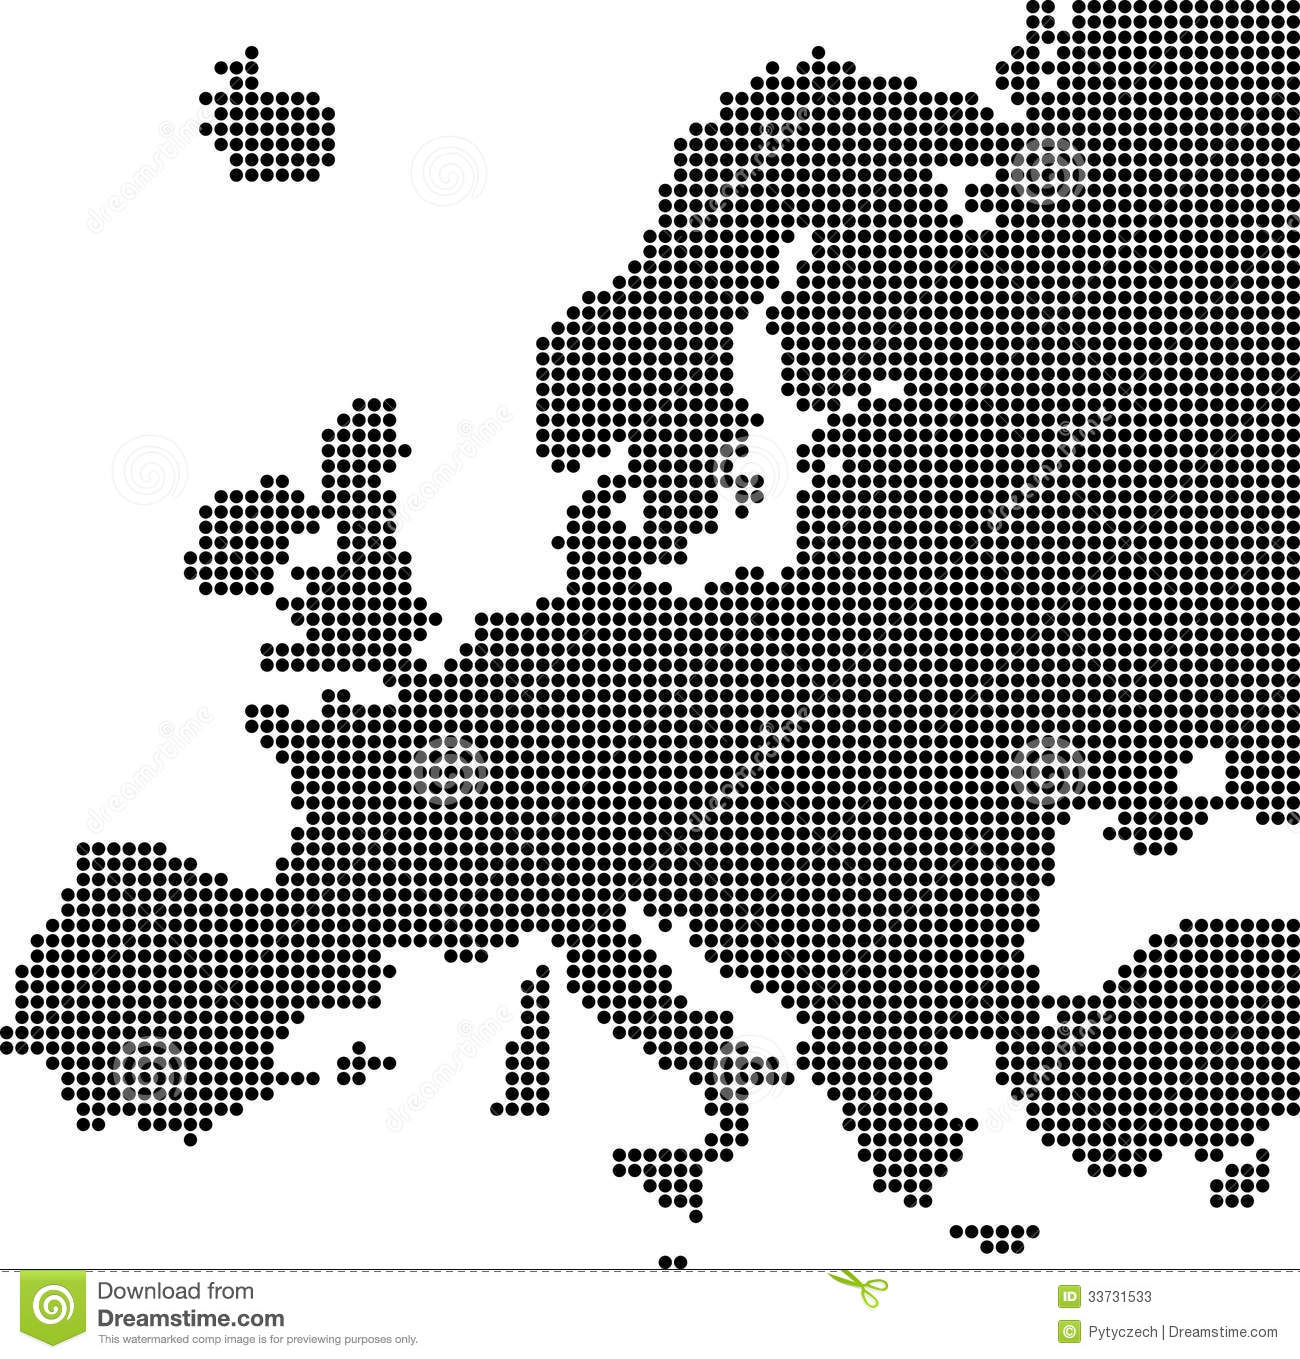 vector illustration of europe - photo #41